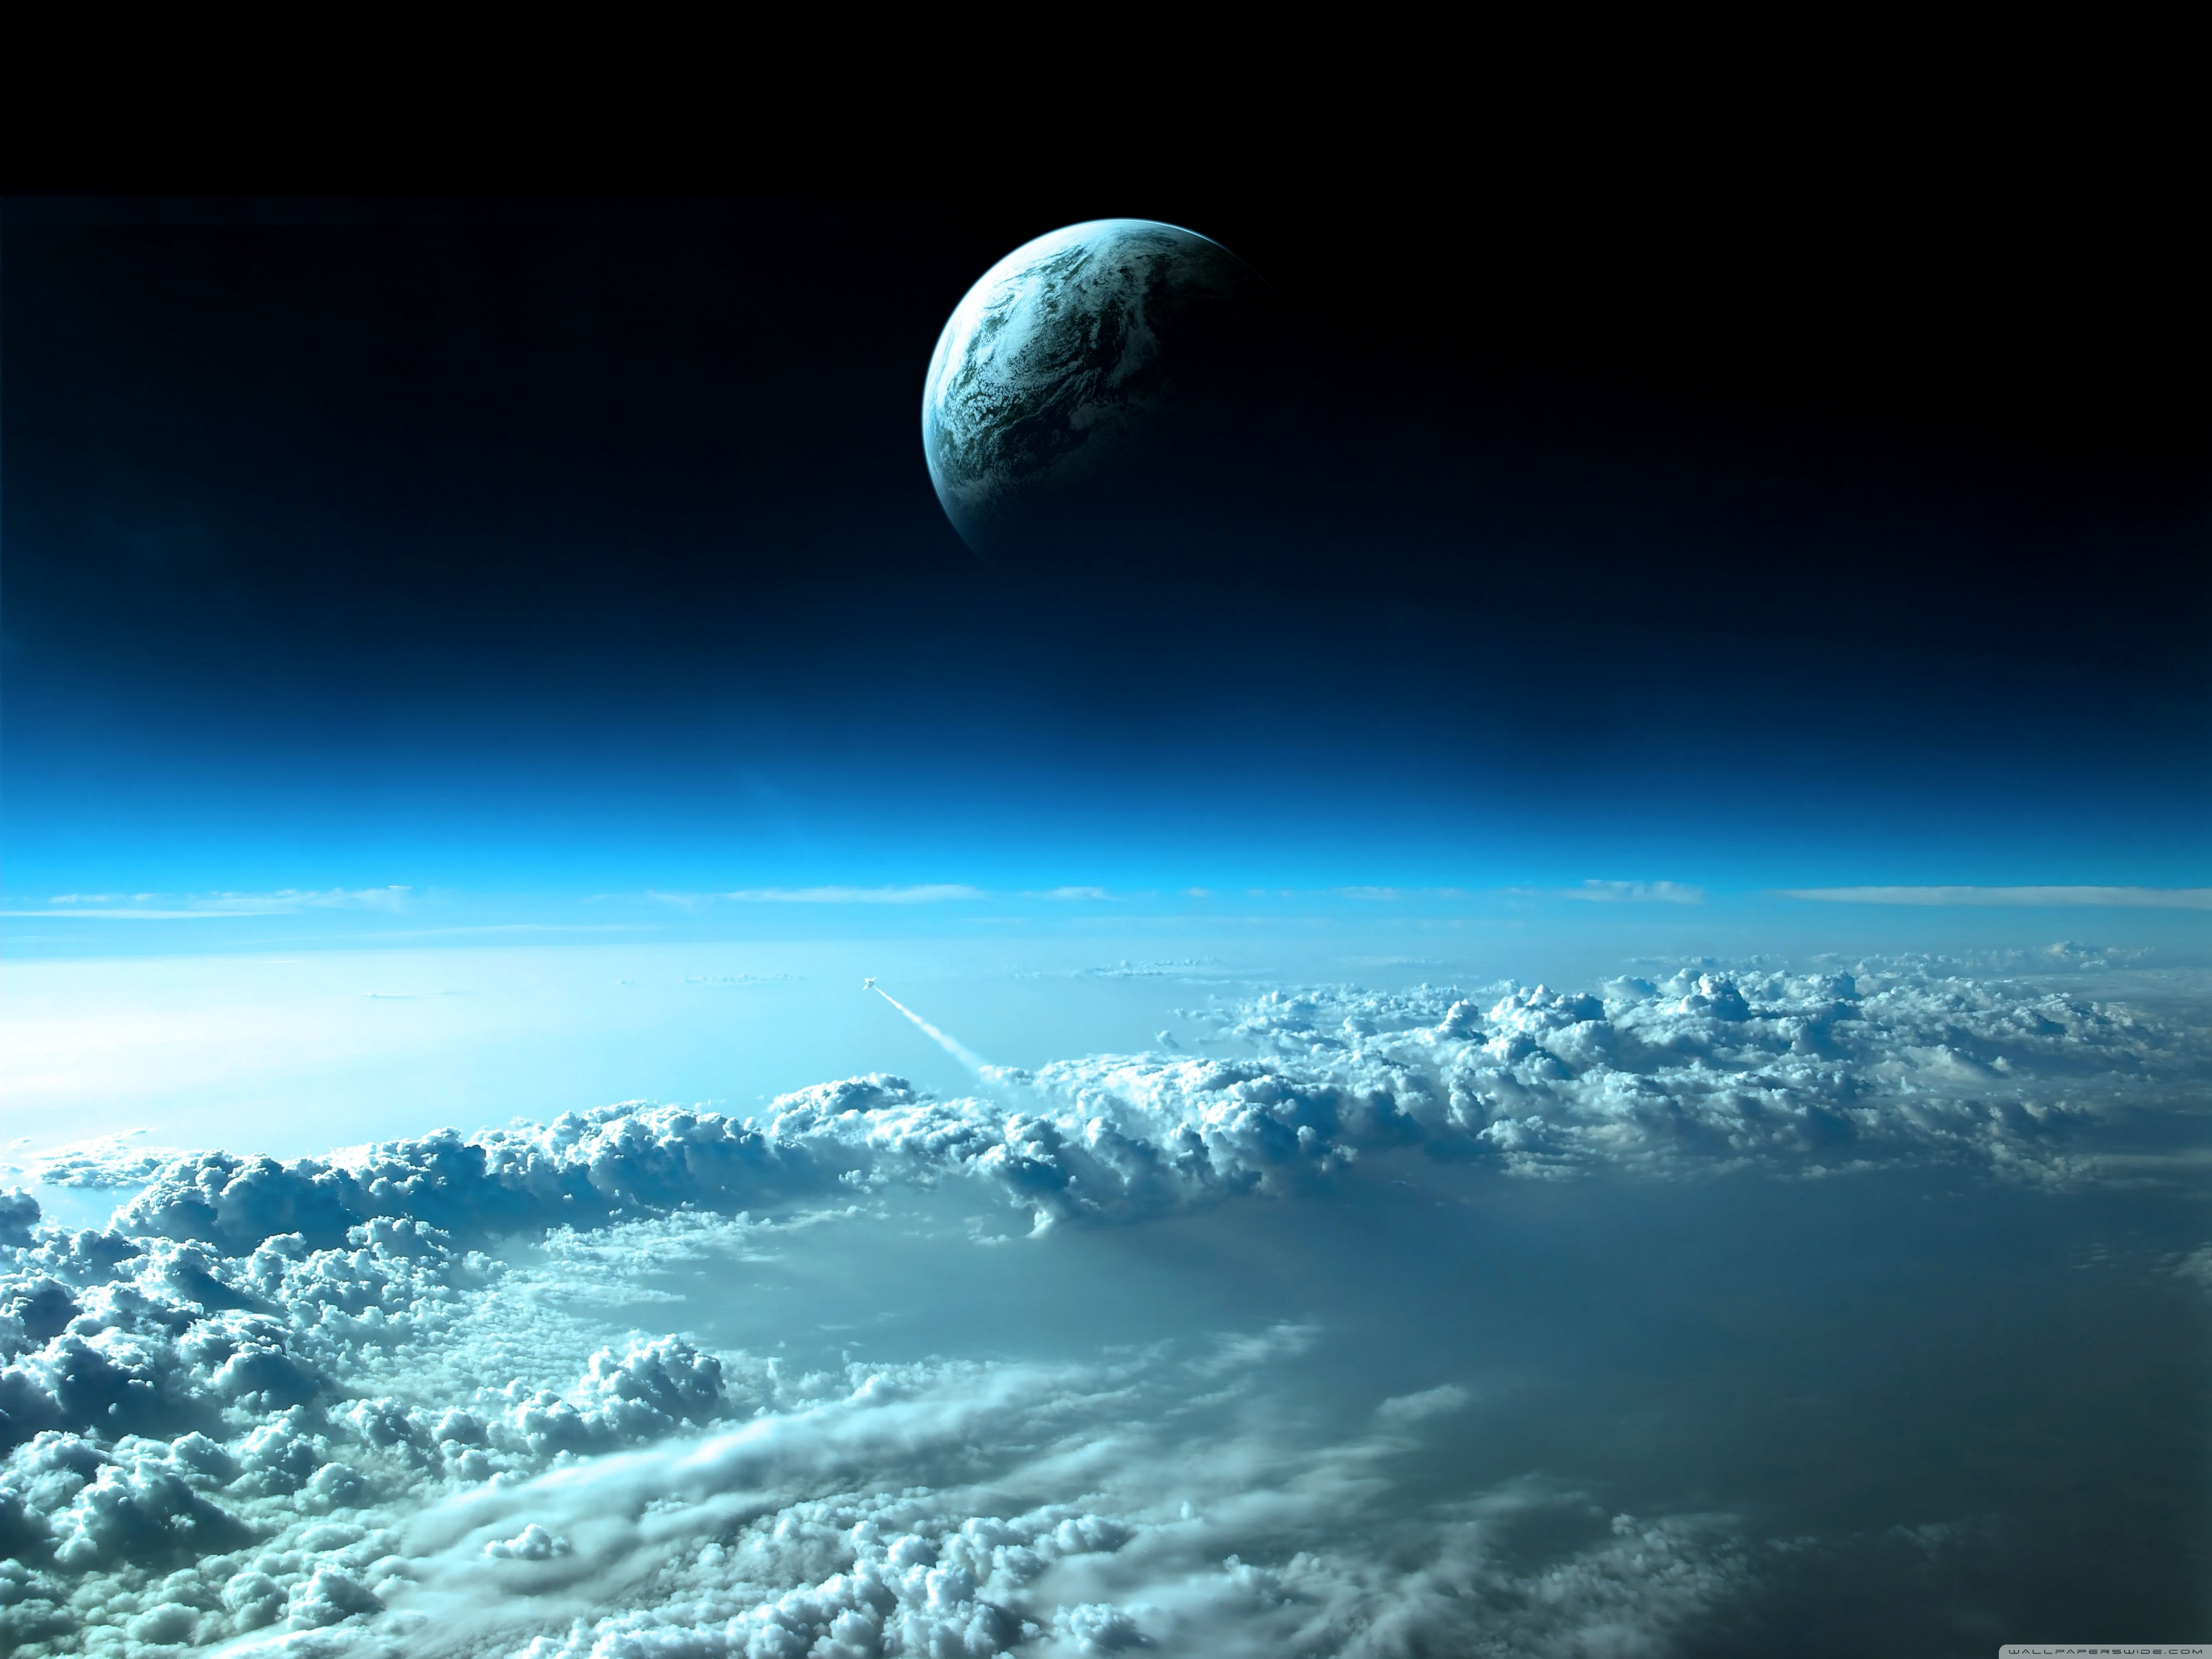 Beautiful Space View 4K Wallpaper Wide Screen Wallpaper 1080p2K4K 4096x3072